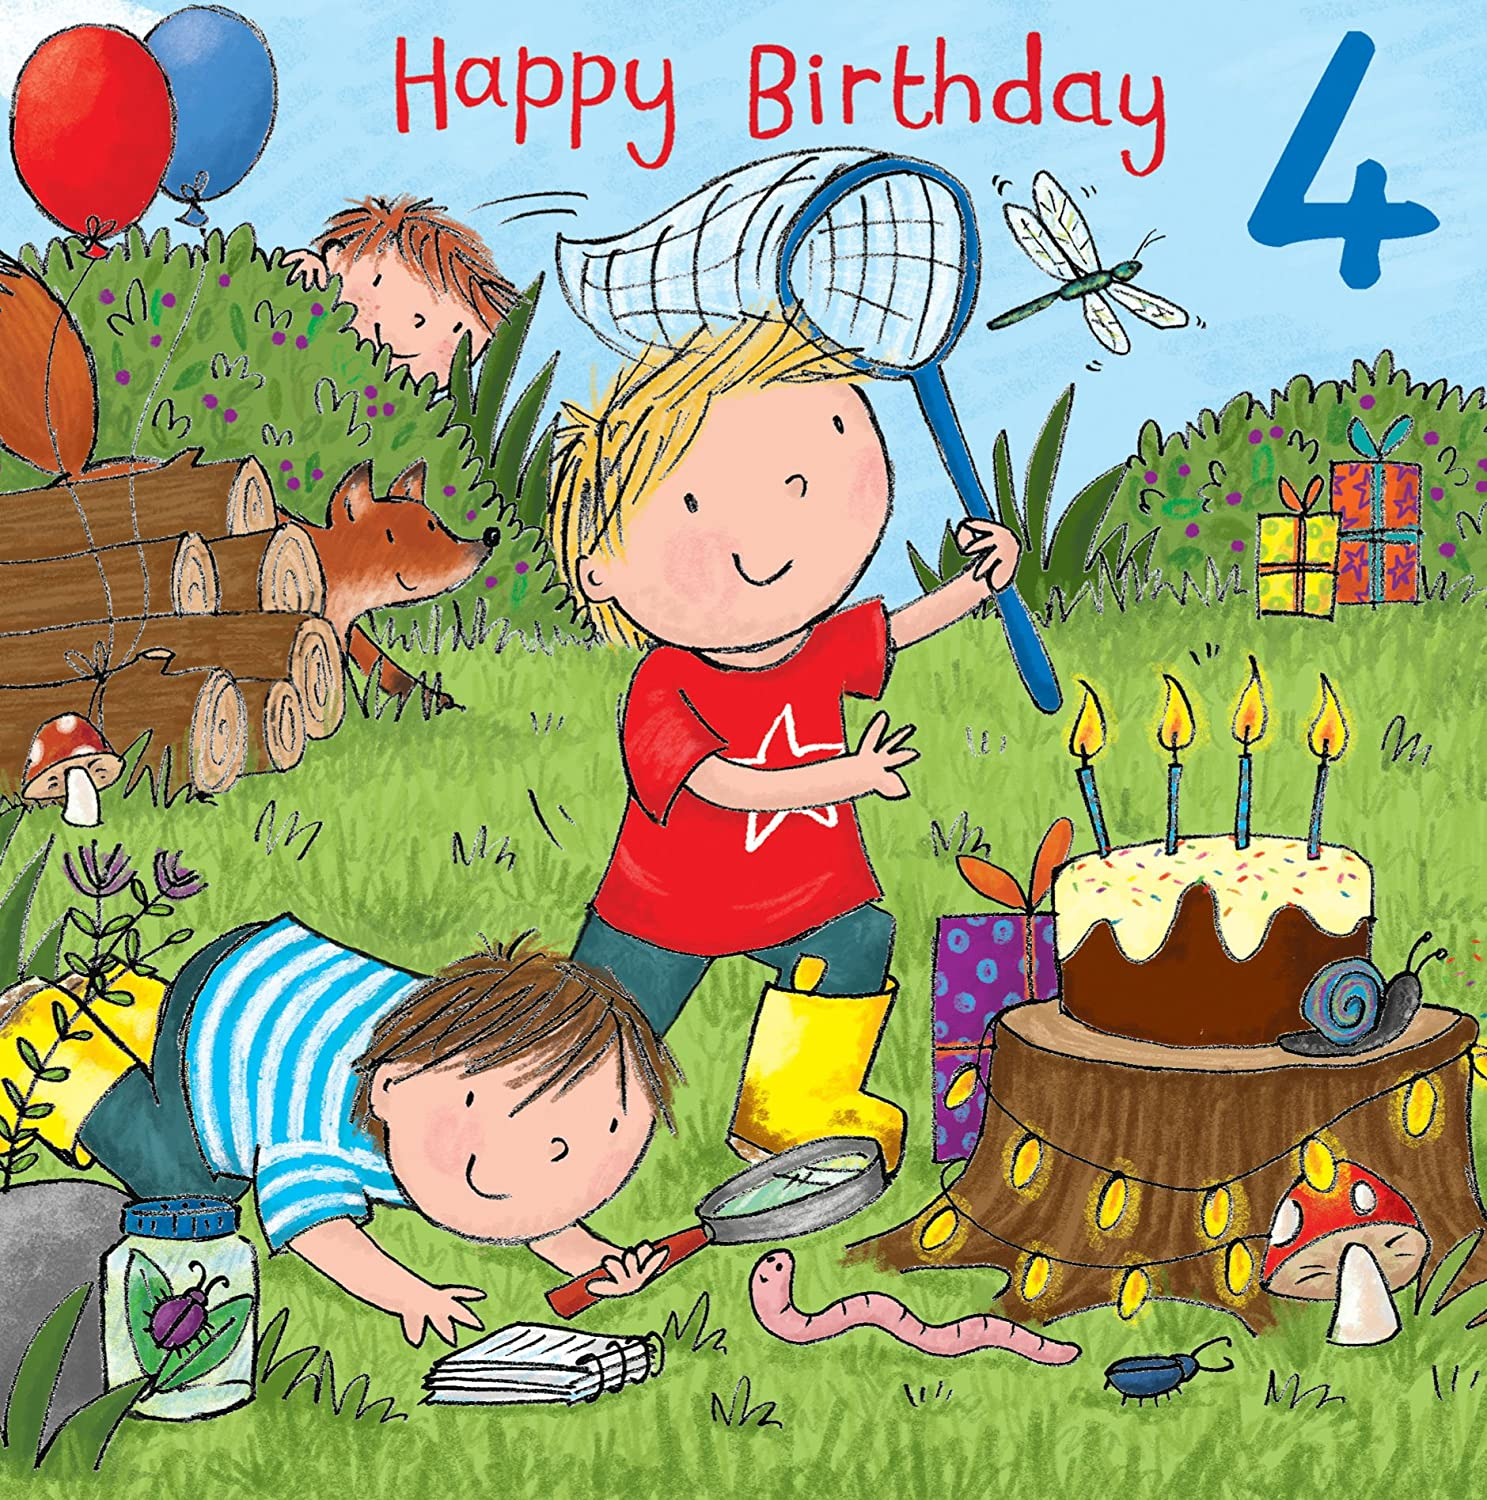 Twizler 4th Birthday Card For Boy With Cake Fox Presents And Glitter